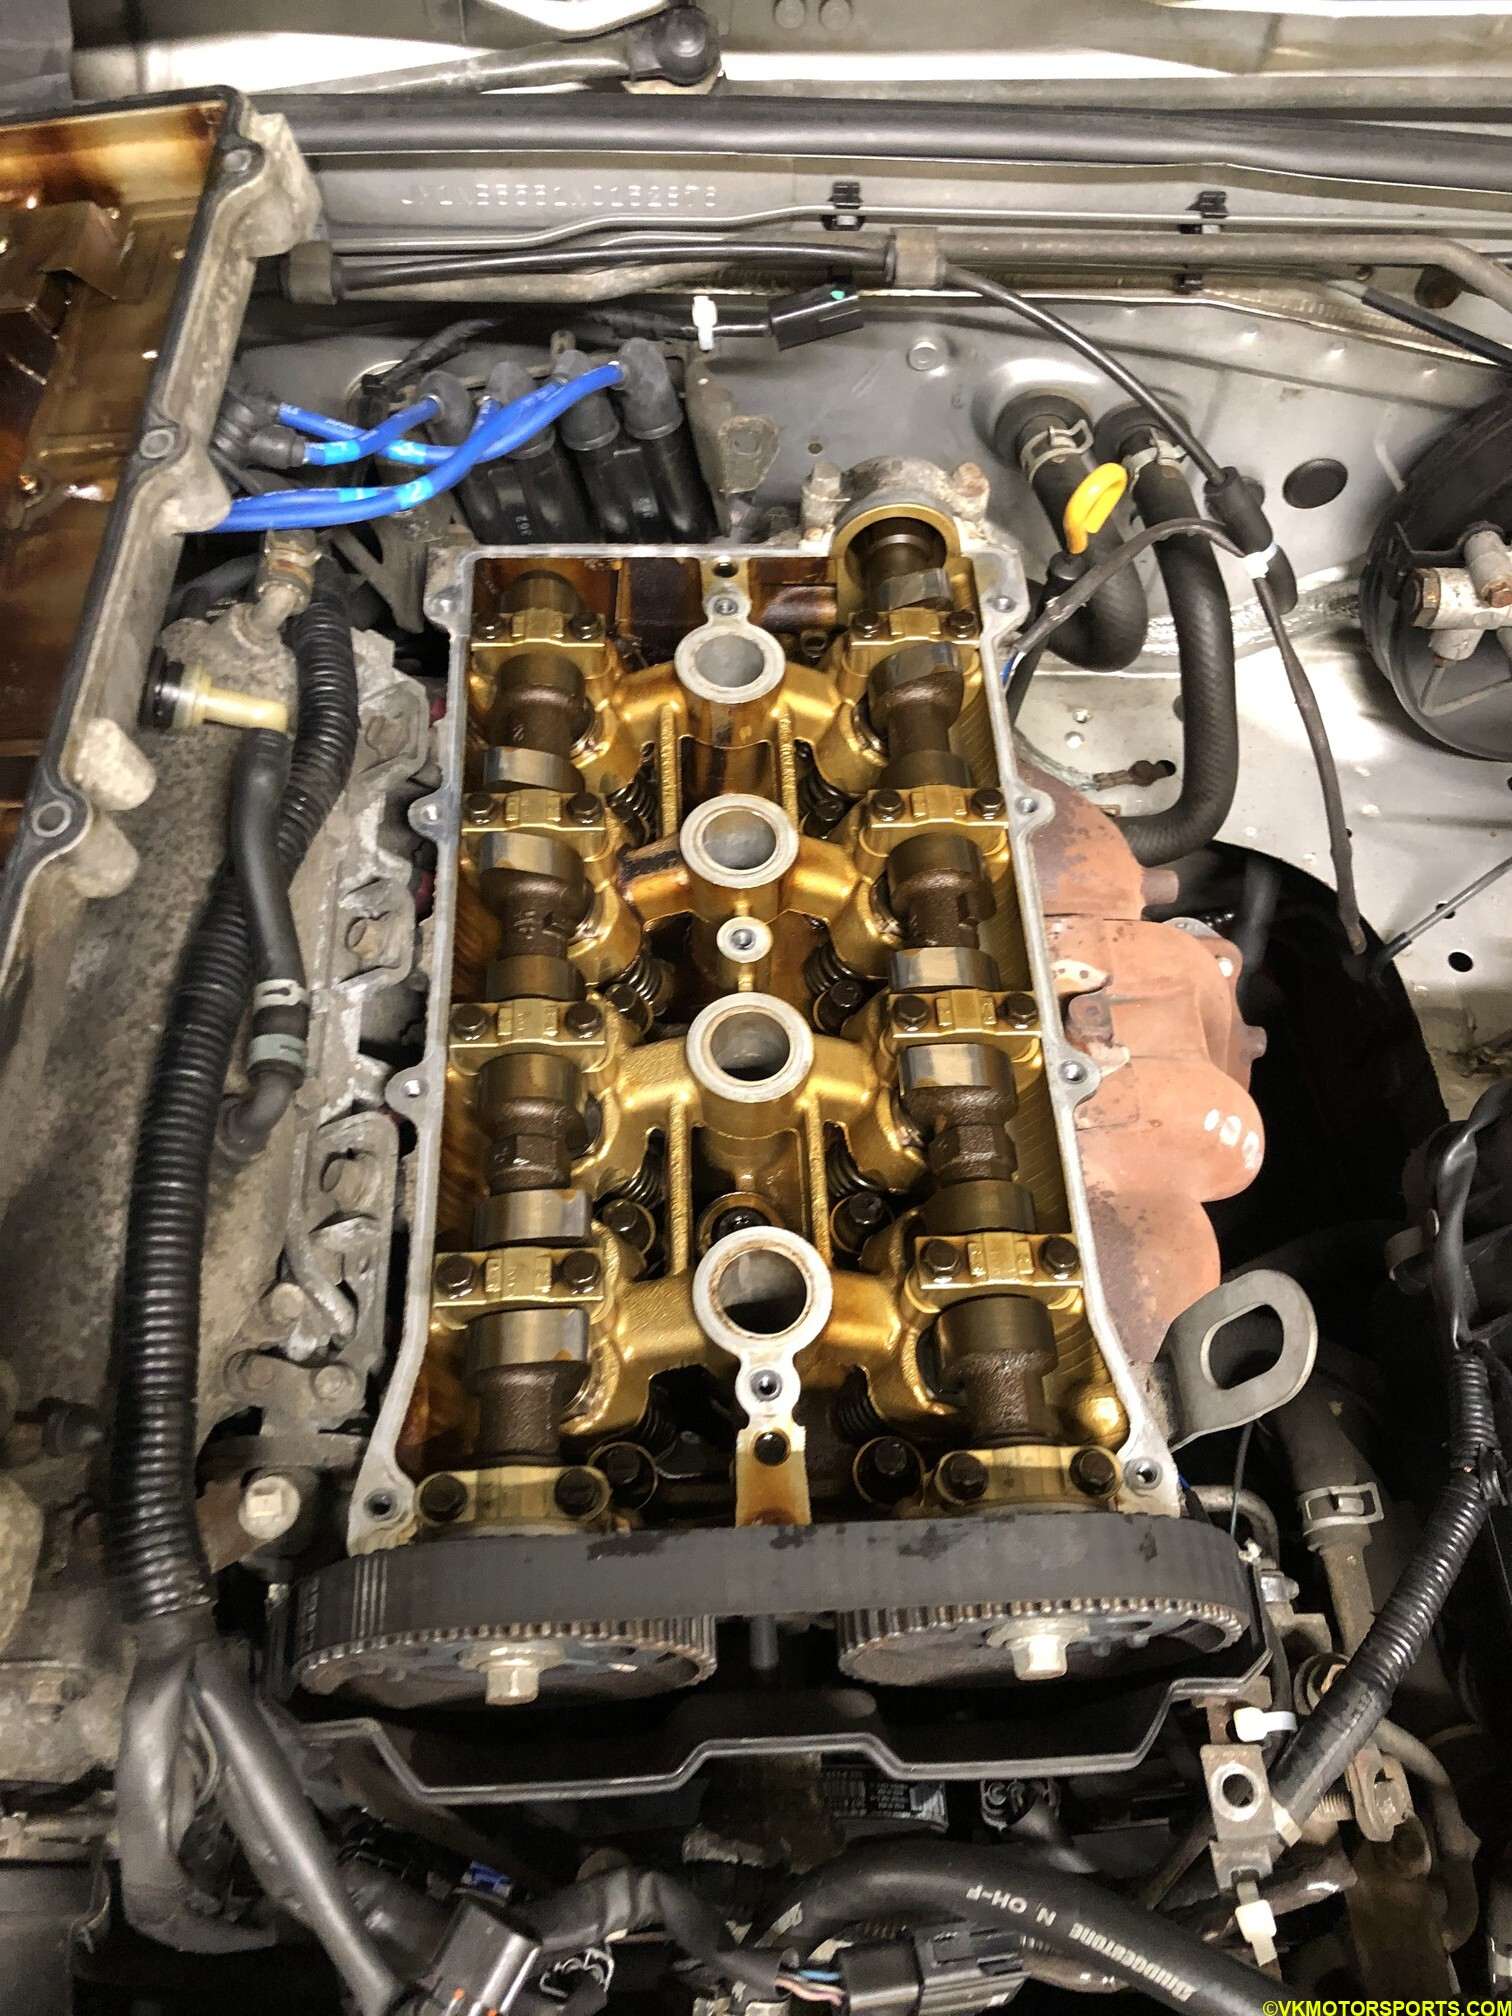 Figure 12. Lift the valve cover out